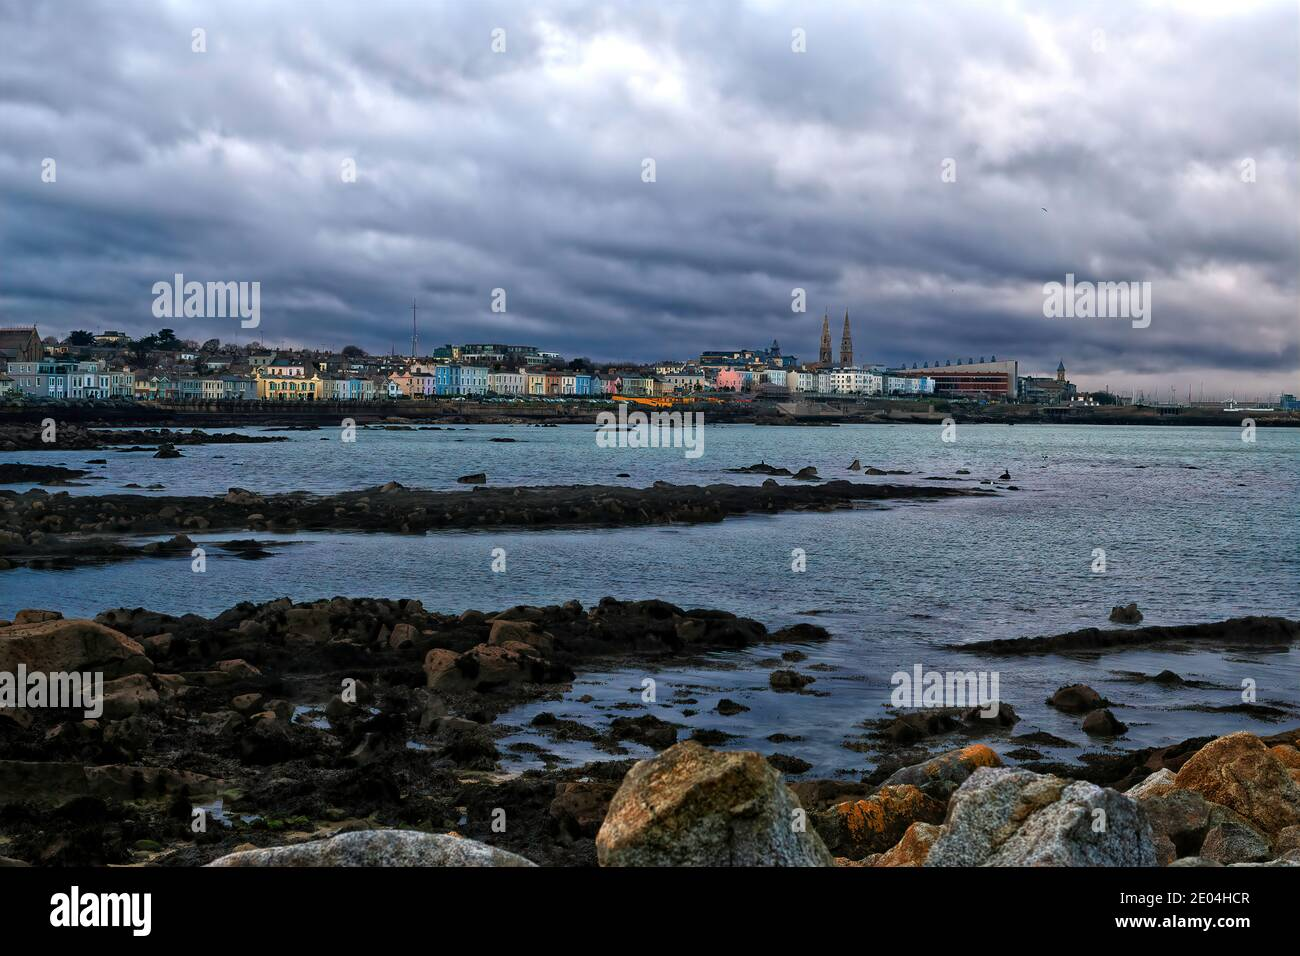 A view of Dun Laoghaire seafront in County Dublin, Ireland Stock Photo